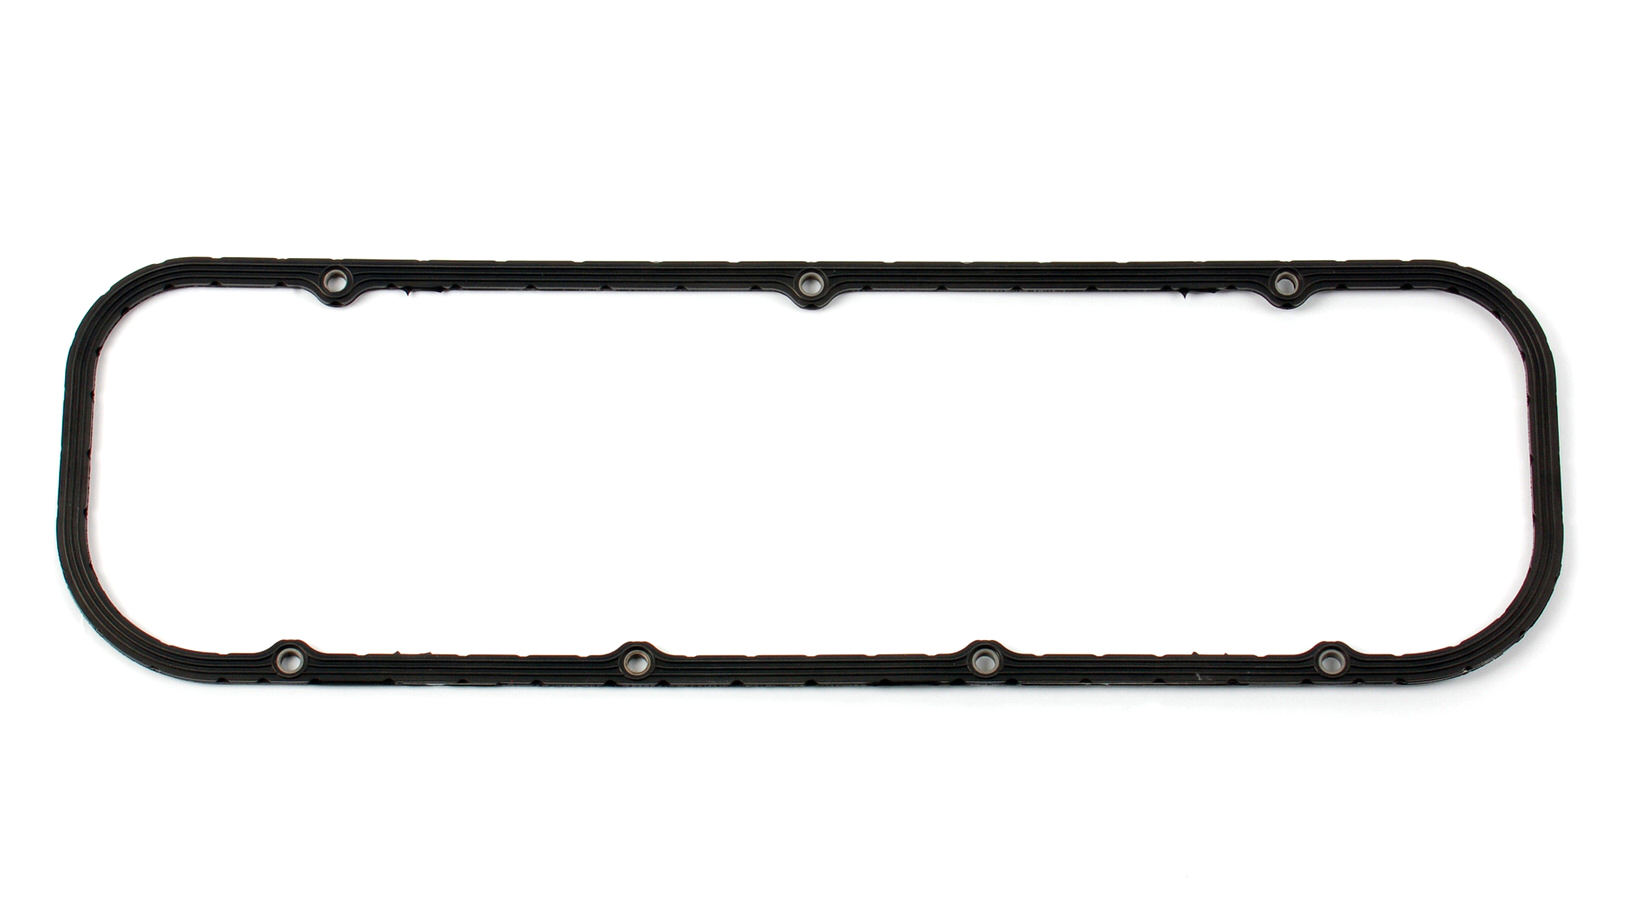 Cometic Gaskets C5975 Valve Cover Gasket, 0.188 in Thick, Steel Core Silicone Rubber, Big Block Chevy, Each